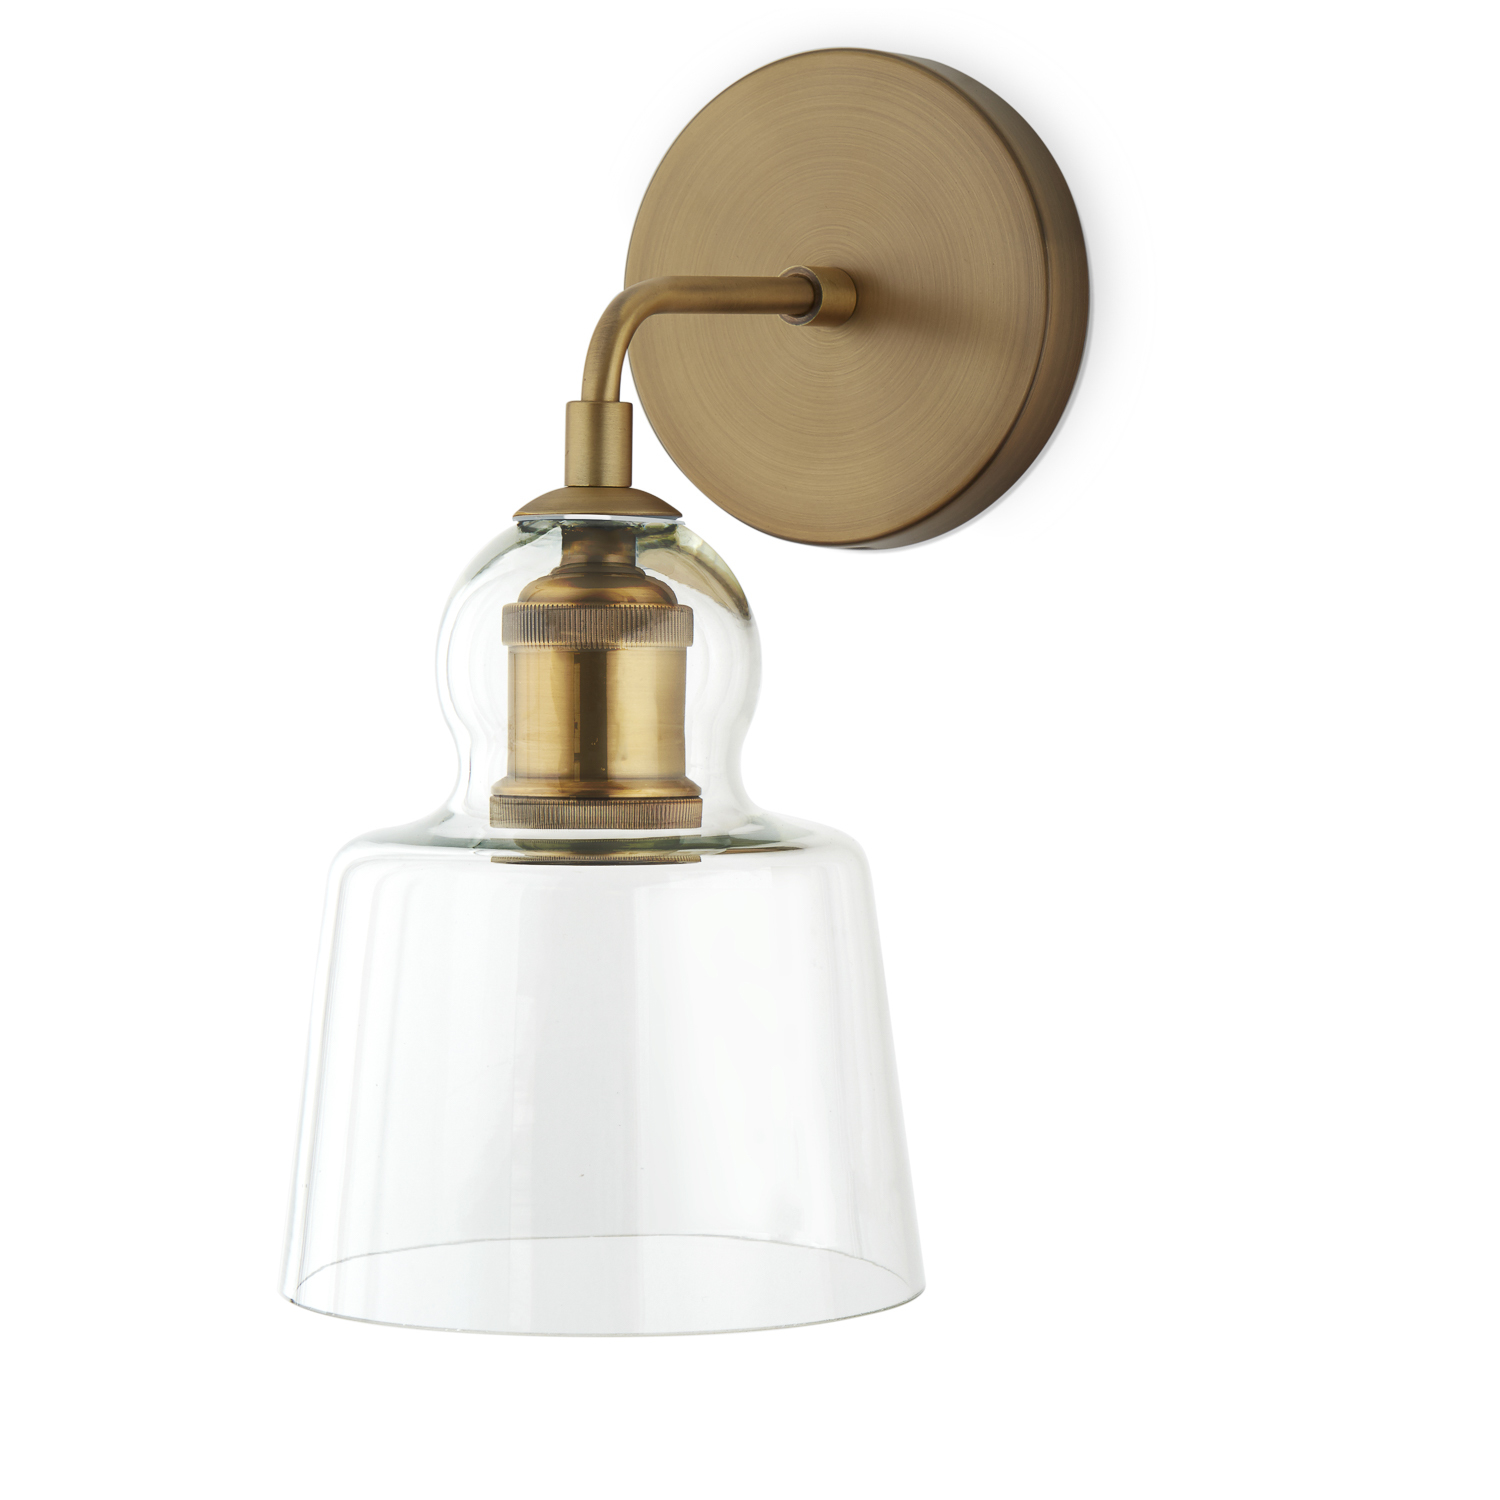 Lights.com Wall Lights Hoyt Wall Sconce with Tapered Bell Glass, Aged Brass